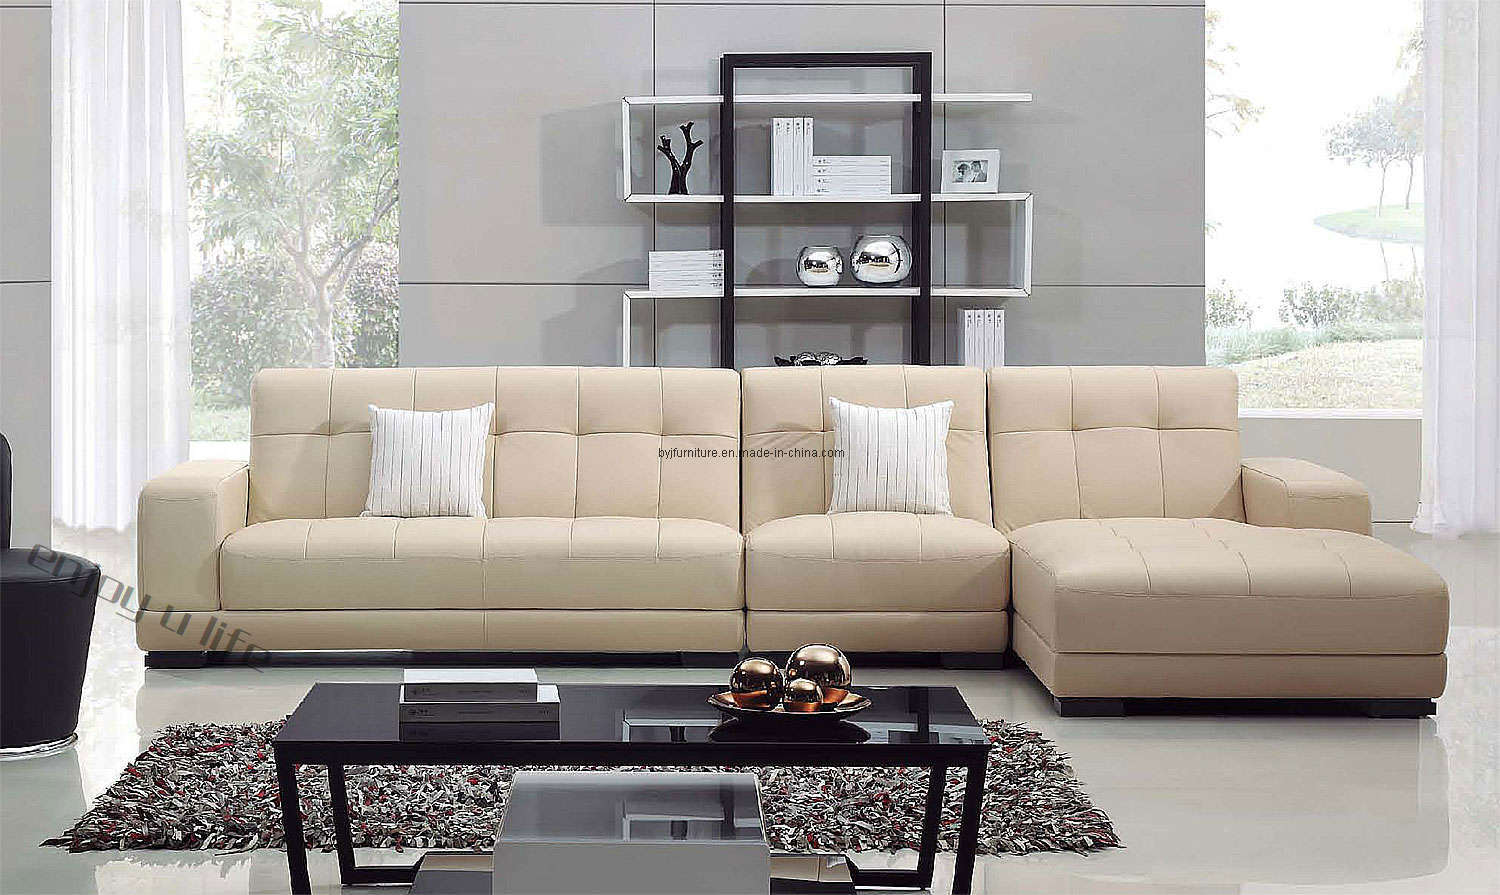 Sofas for living room 2017 grasscloth wallpaper Living room couch ideas